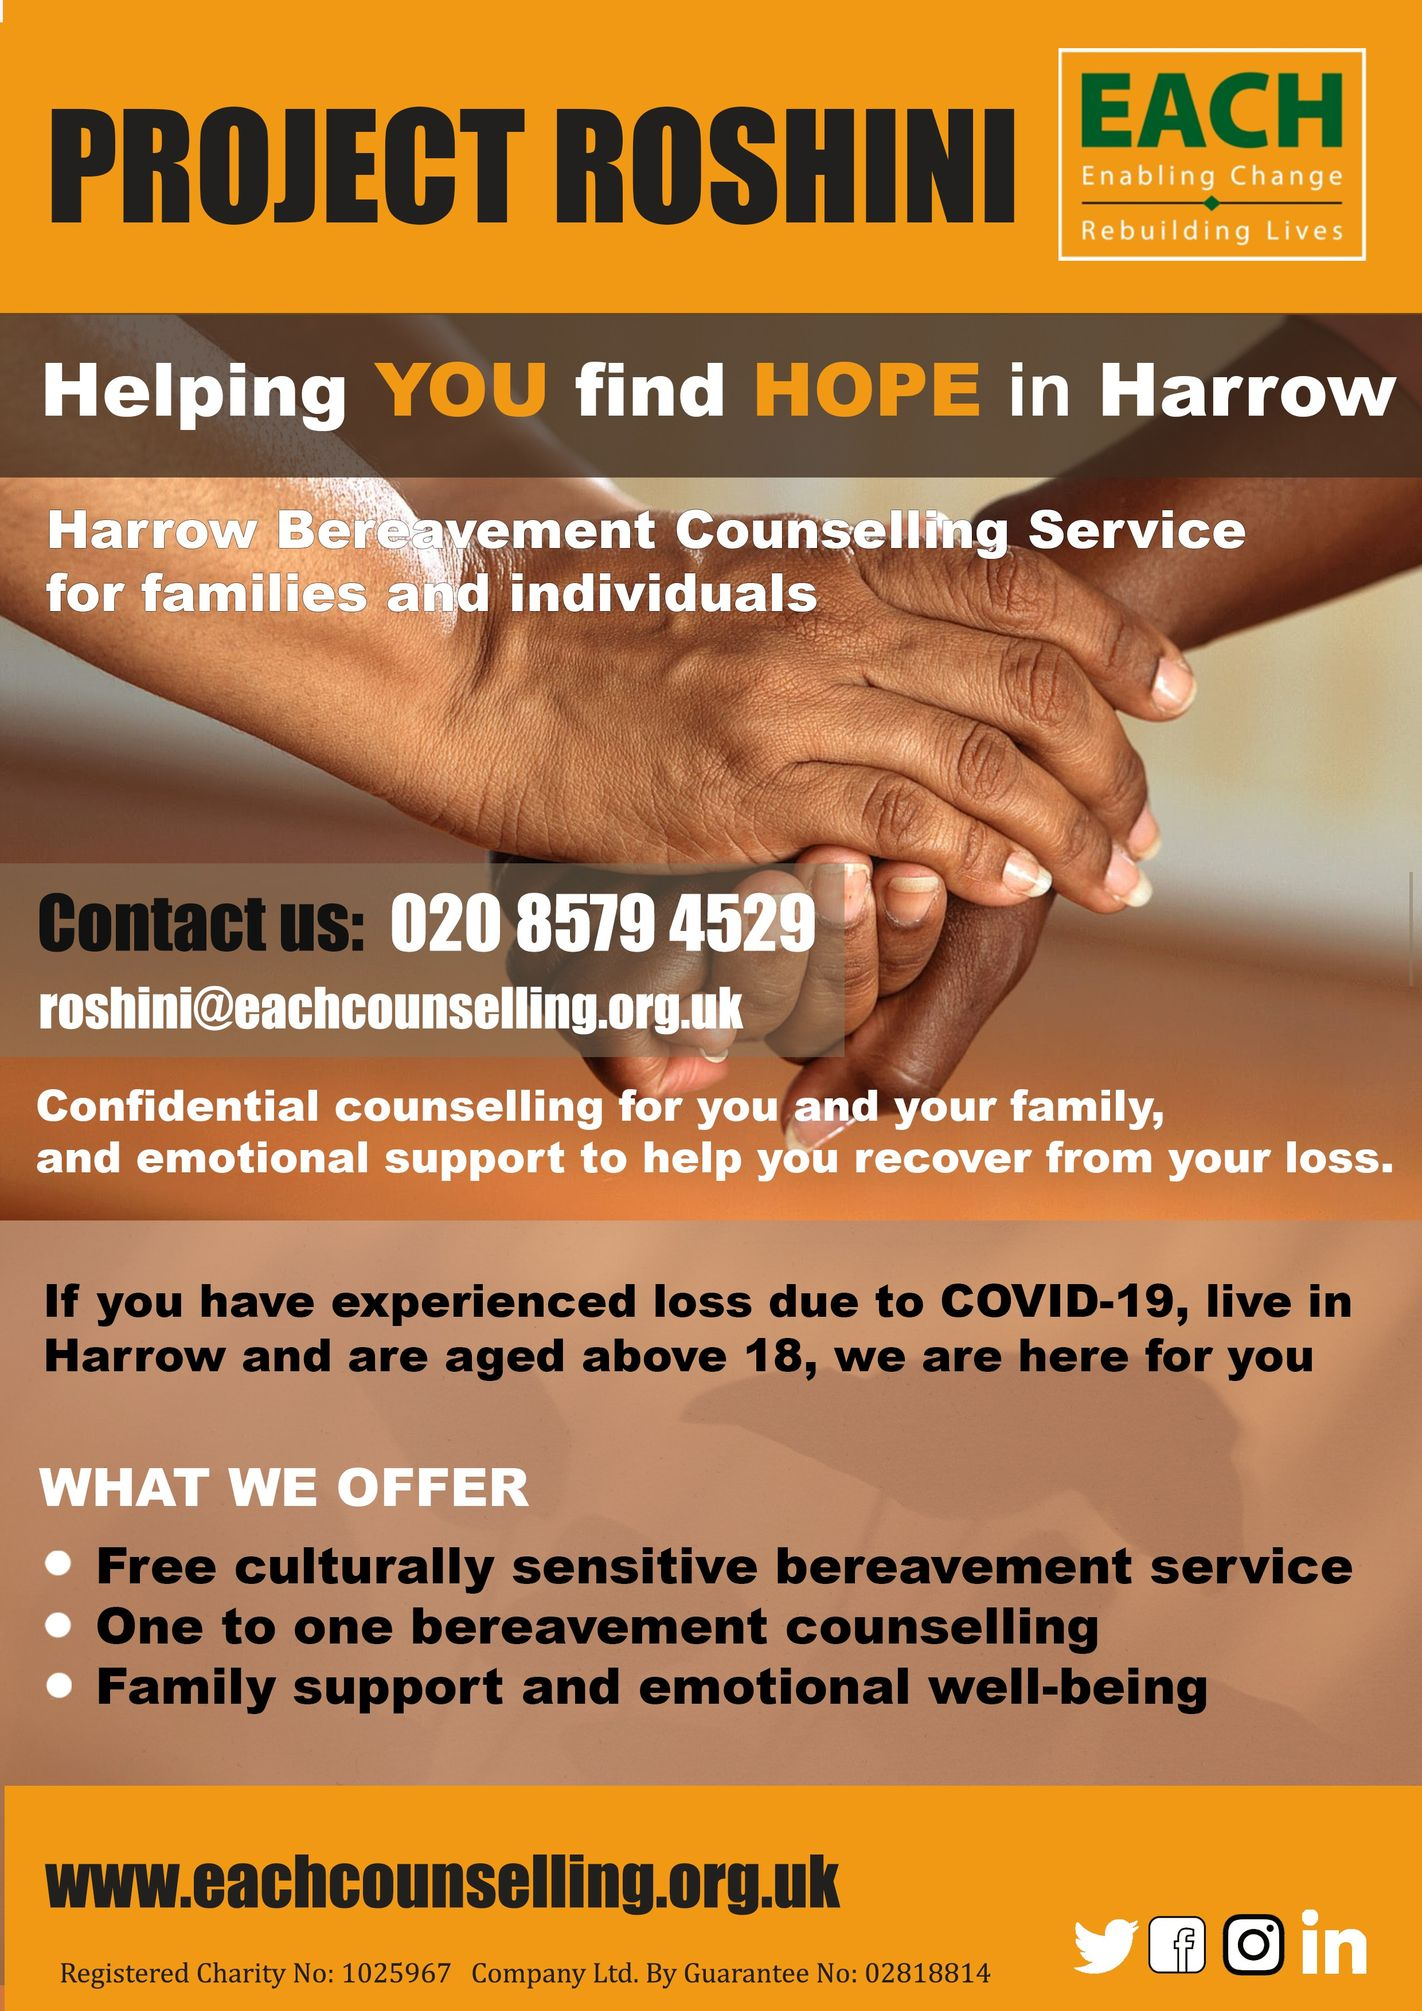 Helping you find hope in Harrow